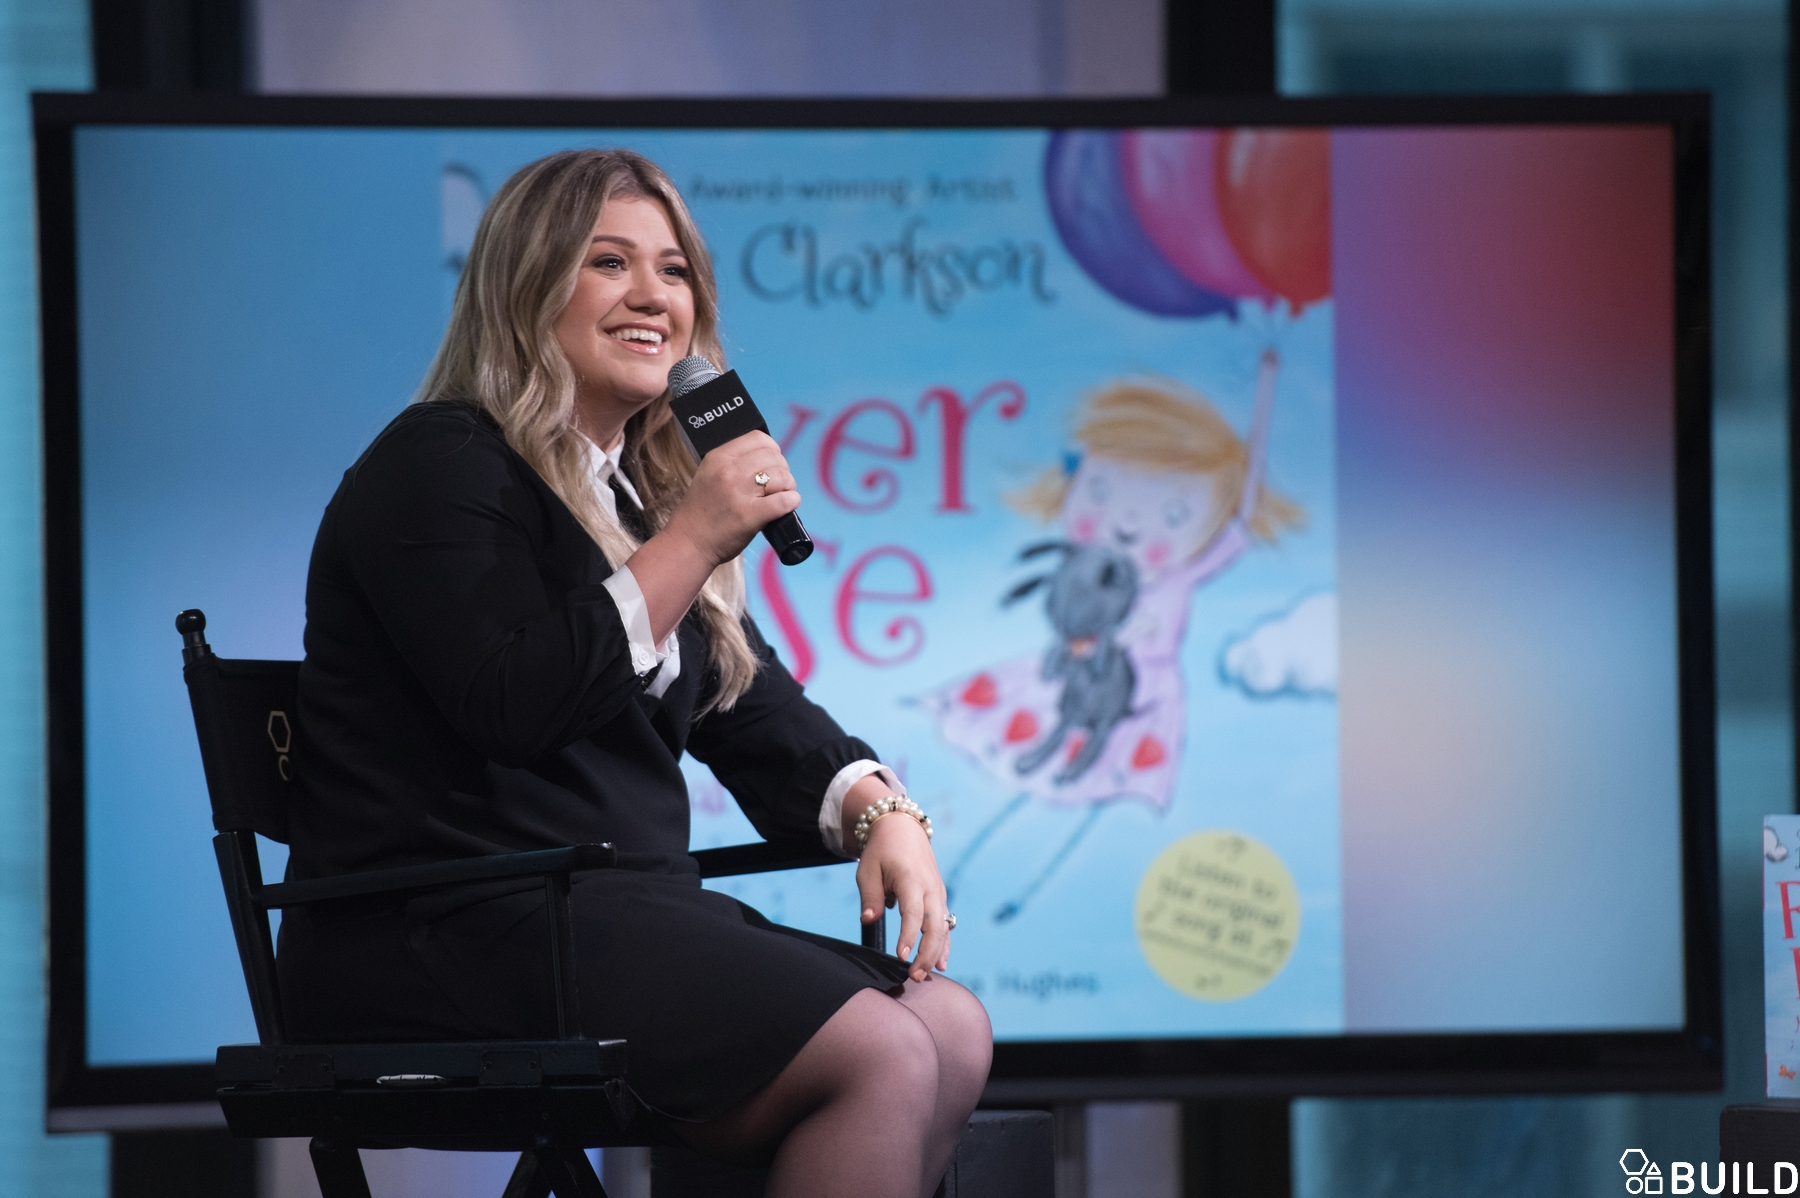 Kelly Clarkson visits AOL Hq for Build on October 4, 2016 in New York. Photos by Noam Galai